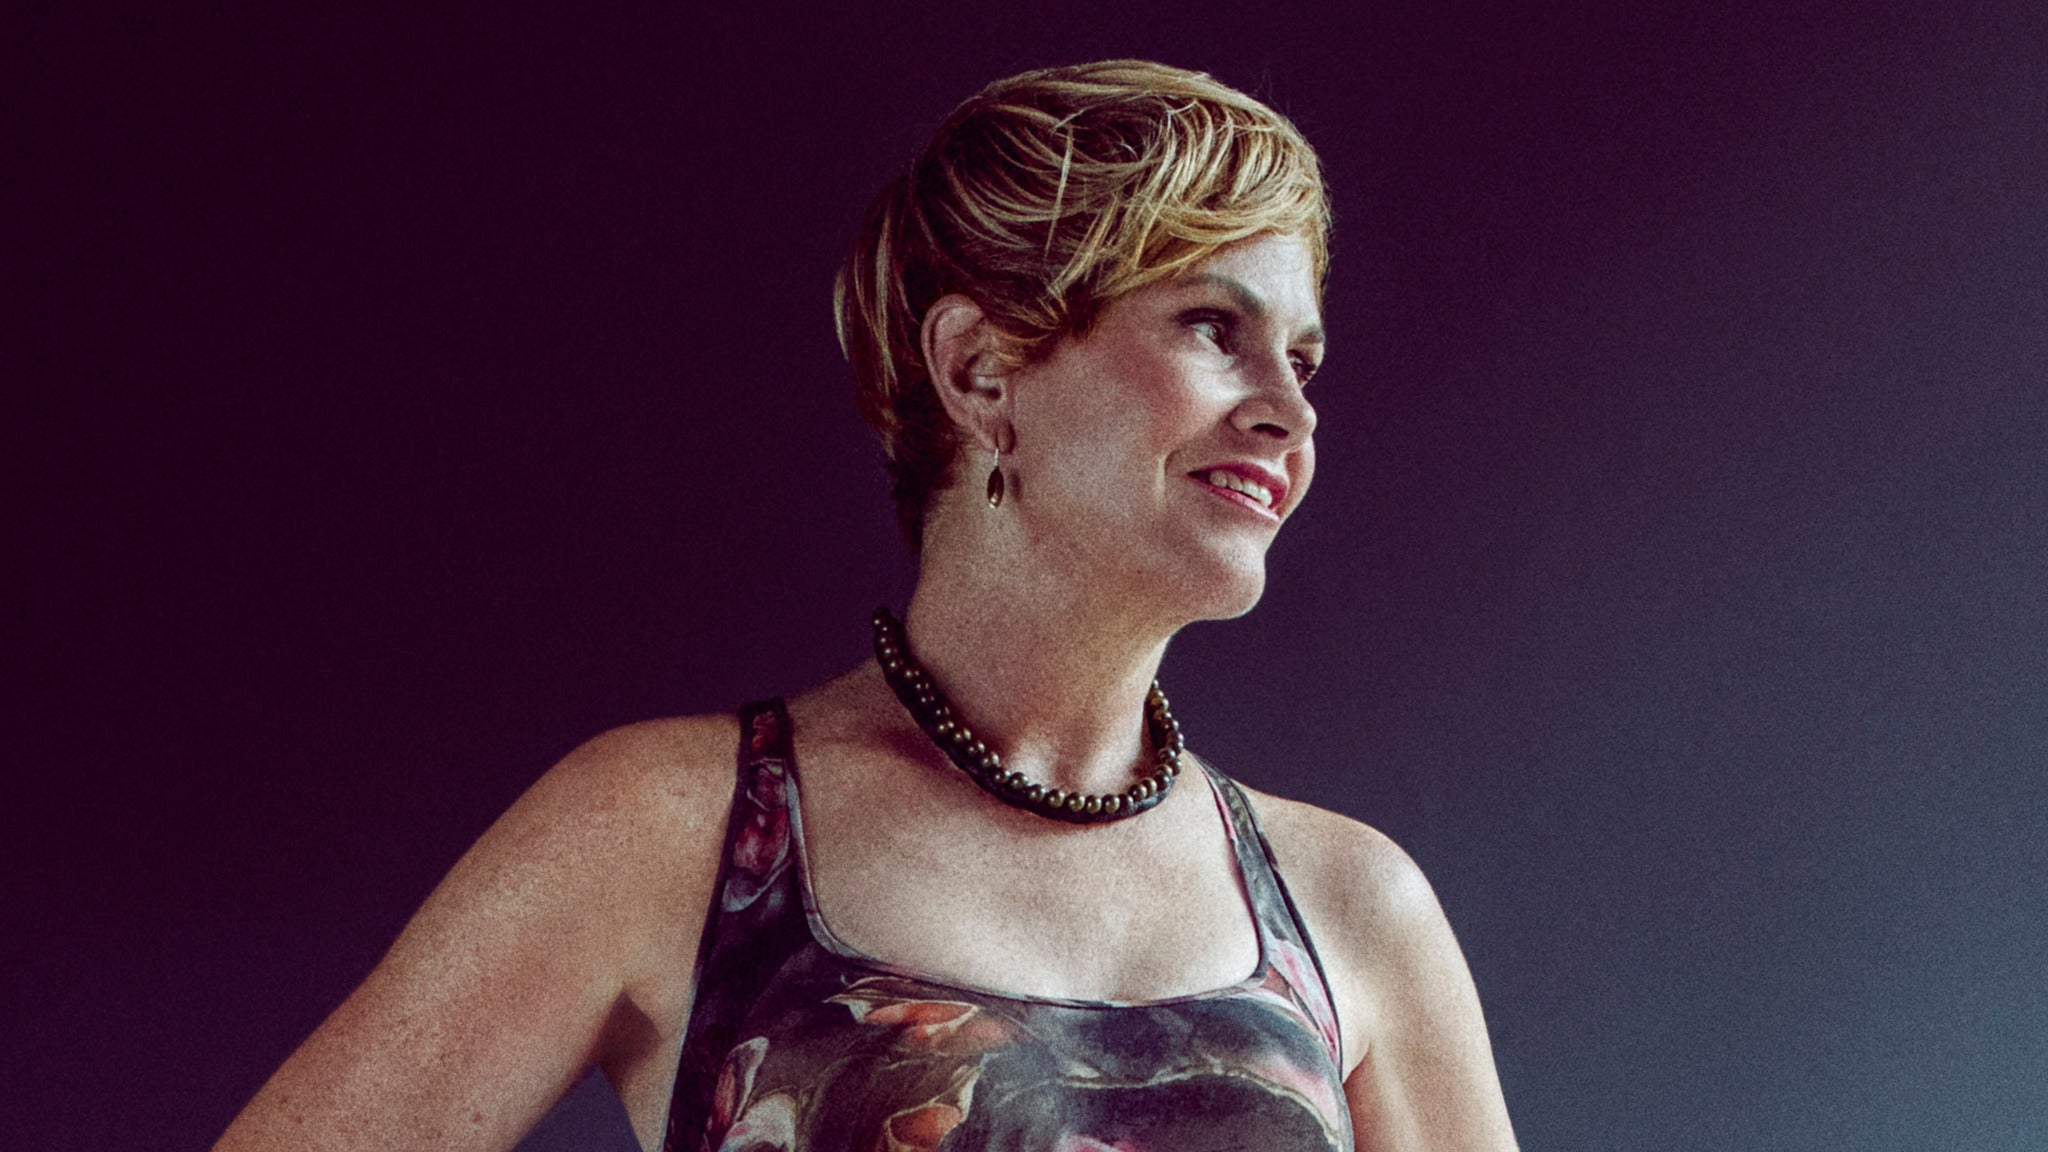 Shawn Colvin: A Few Small Repairs 20th Anniversary Tour